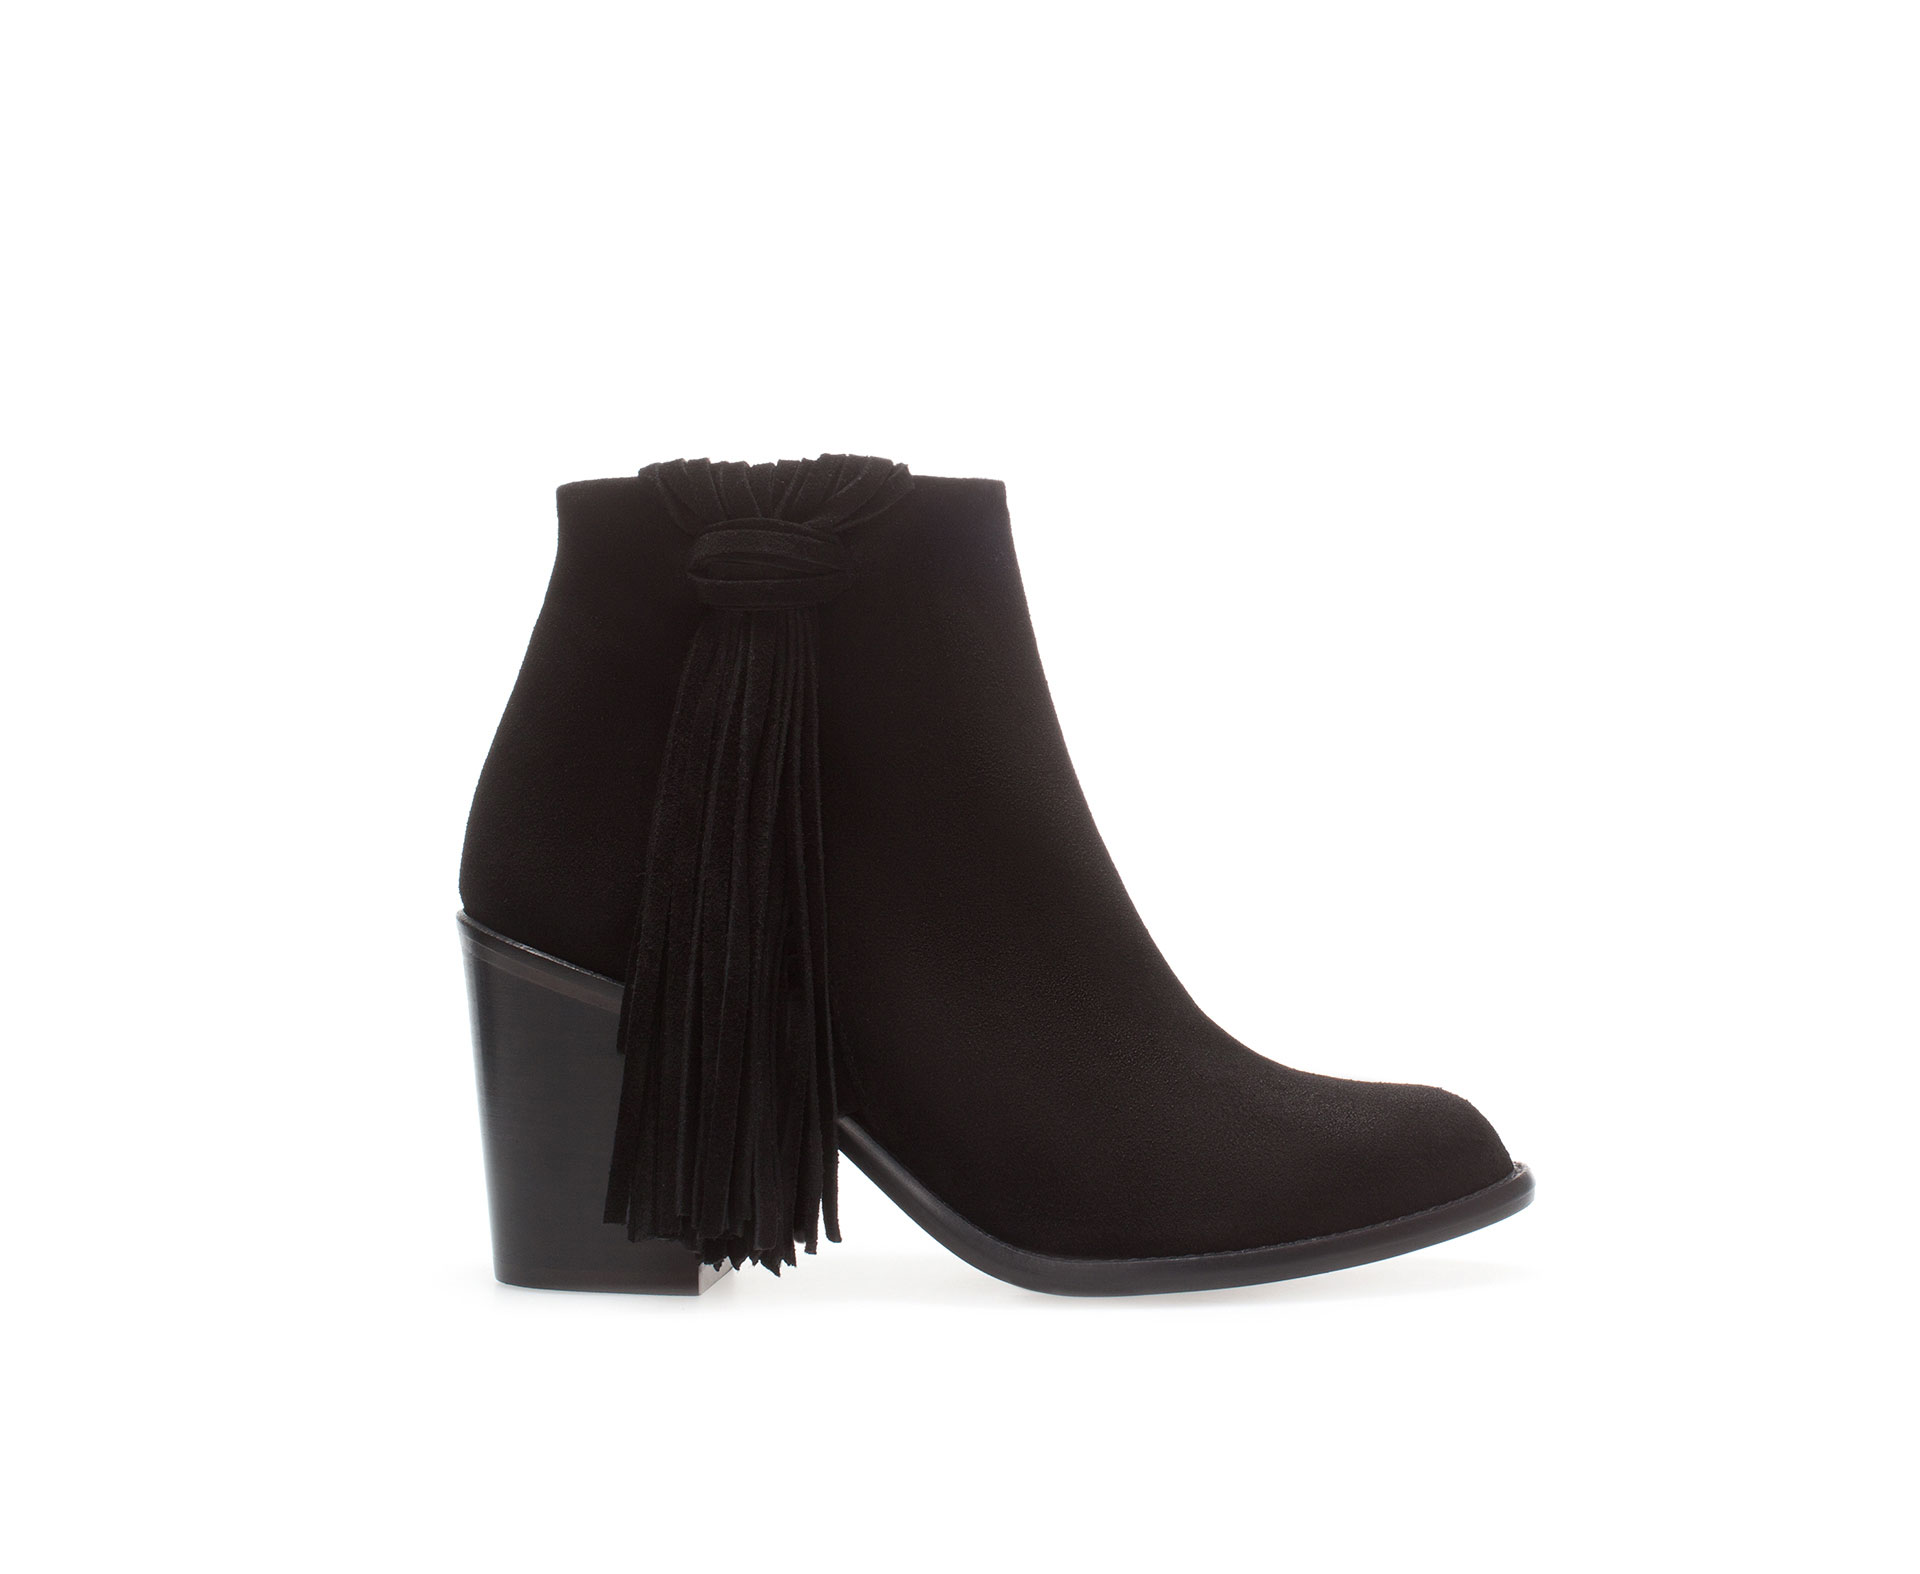 Zara High Heel Leather Ankle Boot with Fringes in Black | Lyst